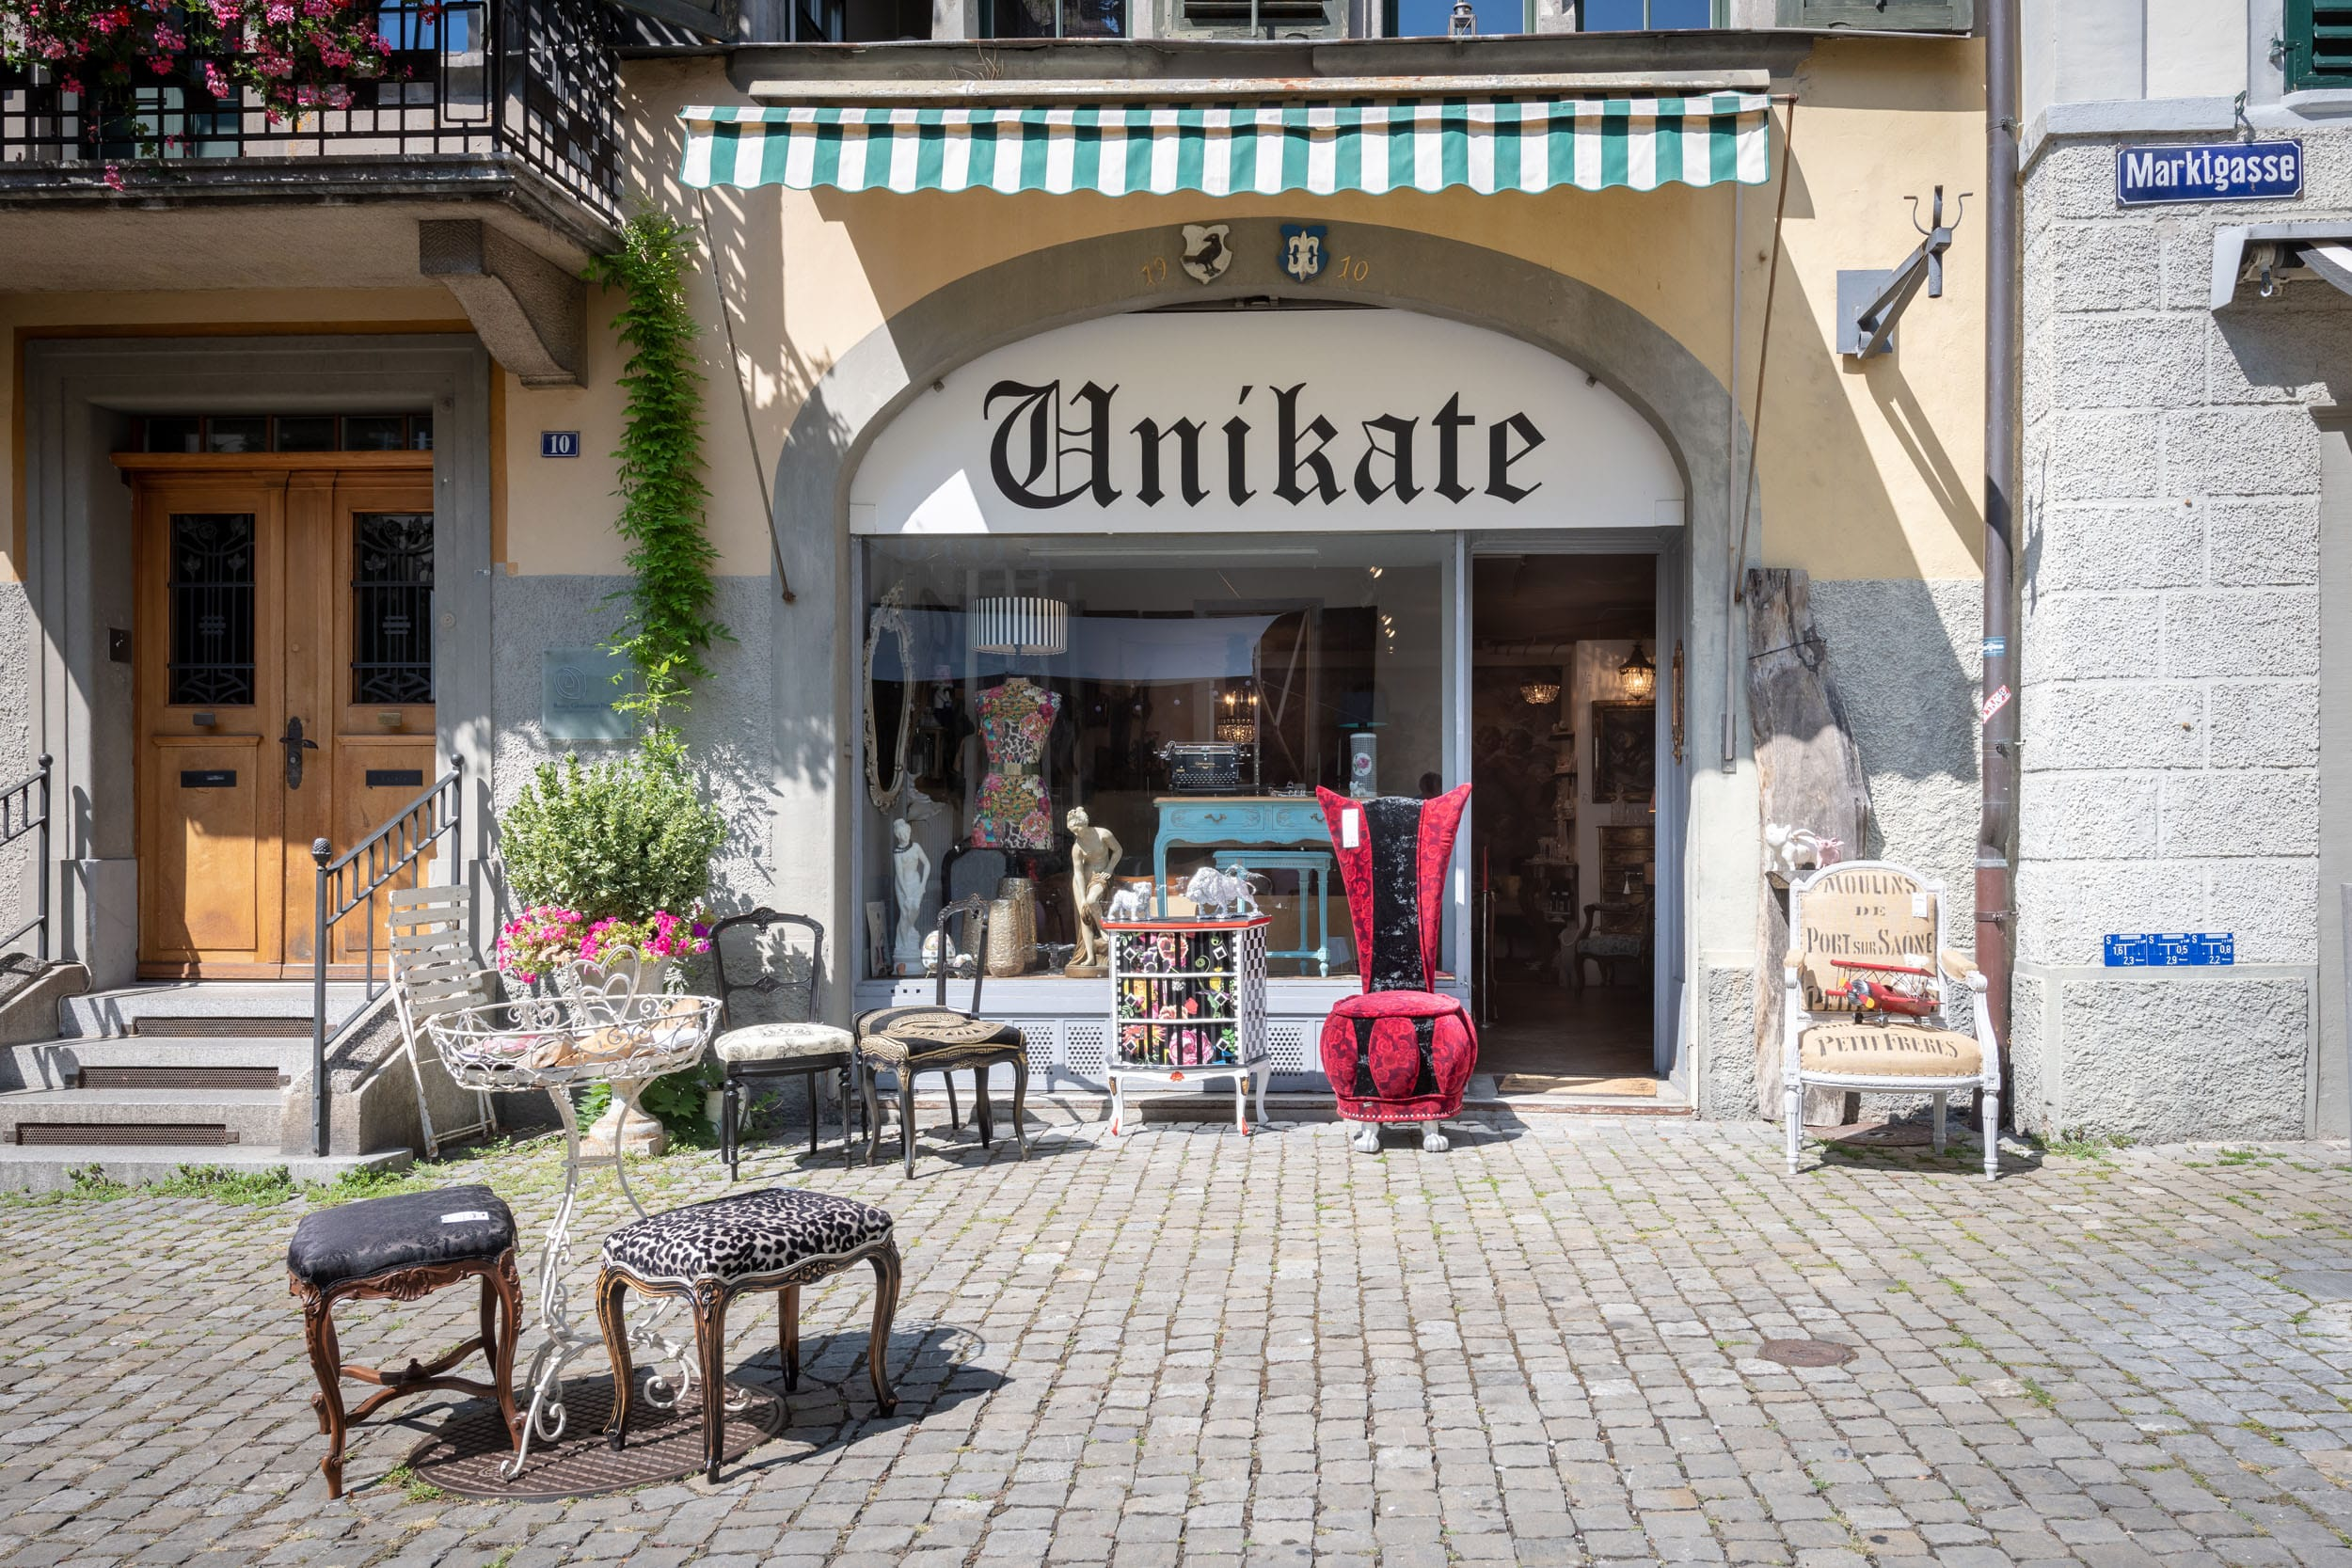 Möbel Unikate Somo Möbel&design – Unikate In Rapperswil